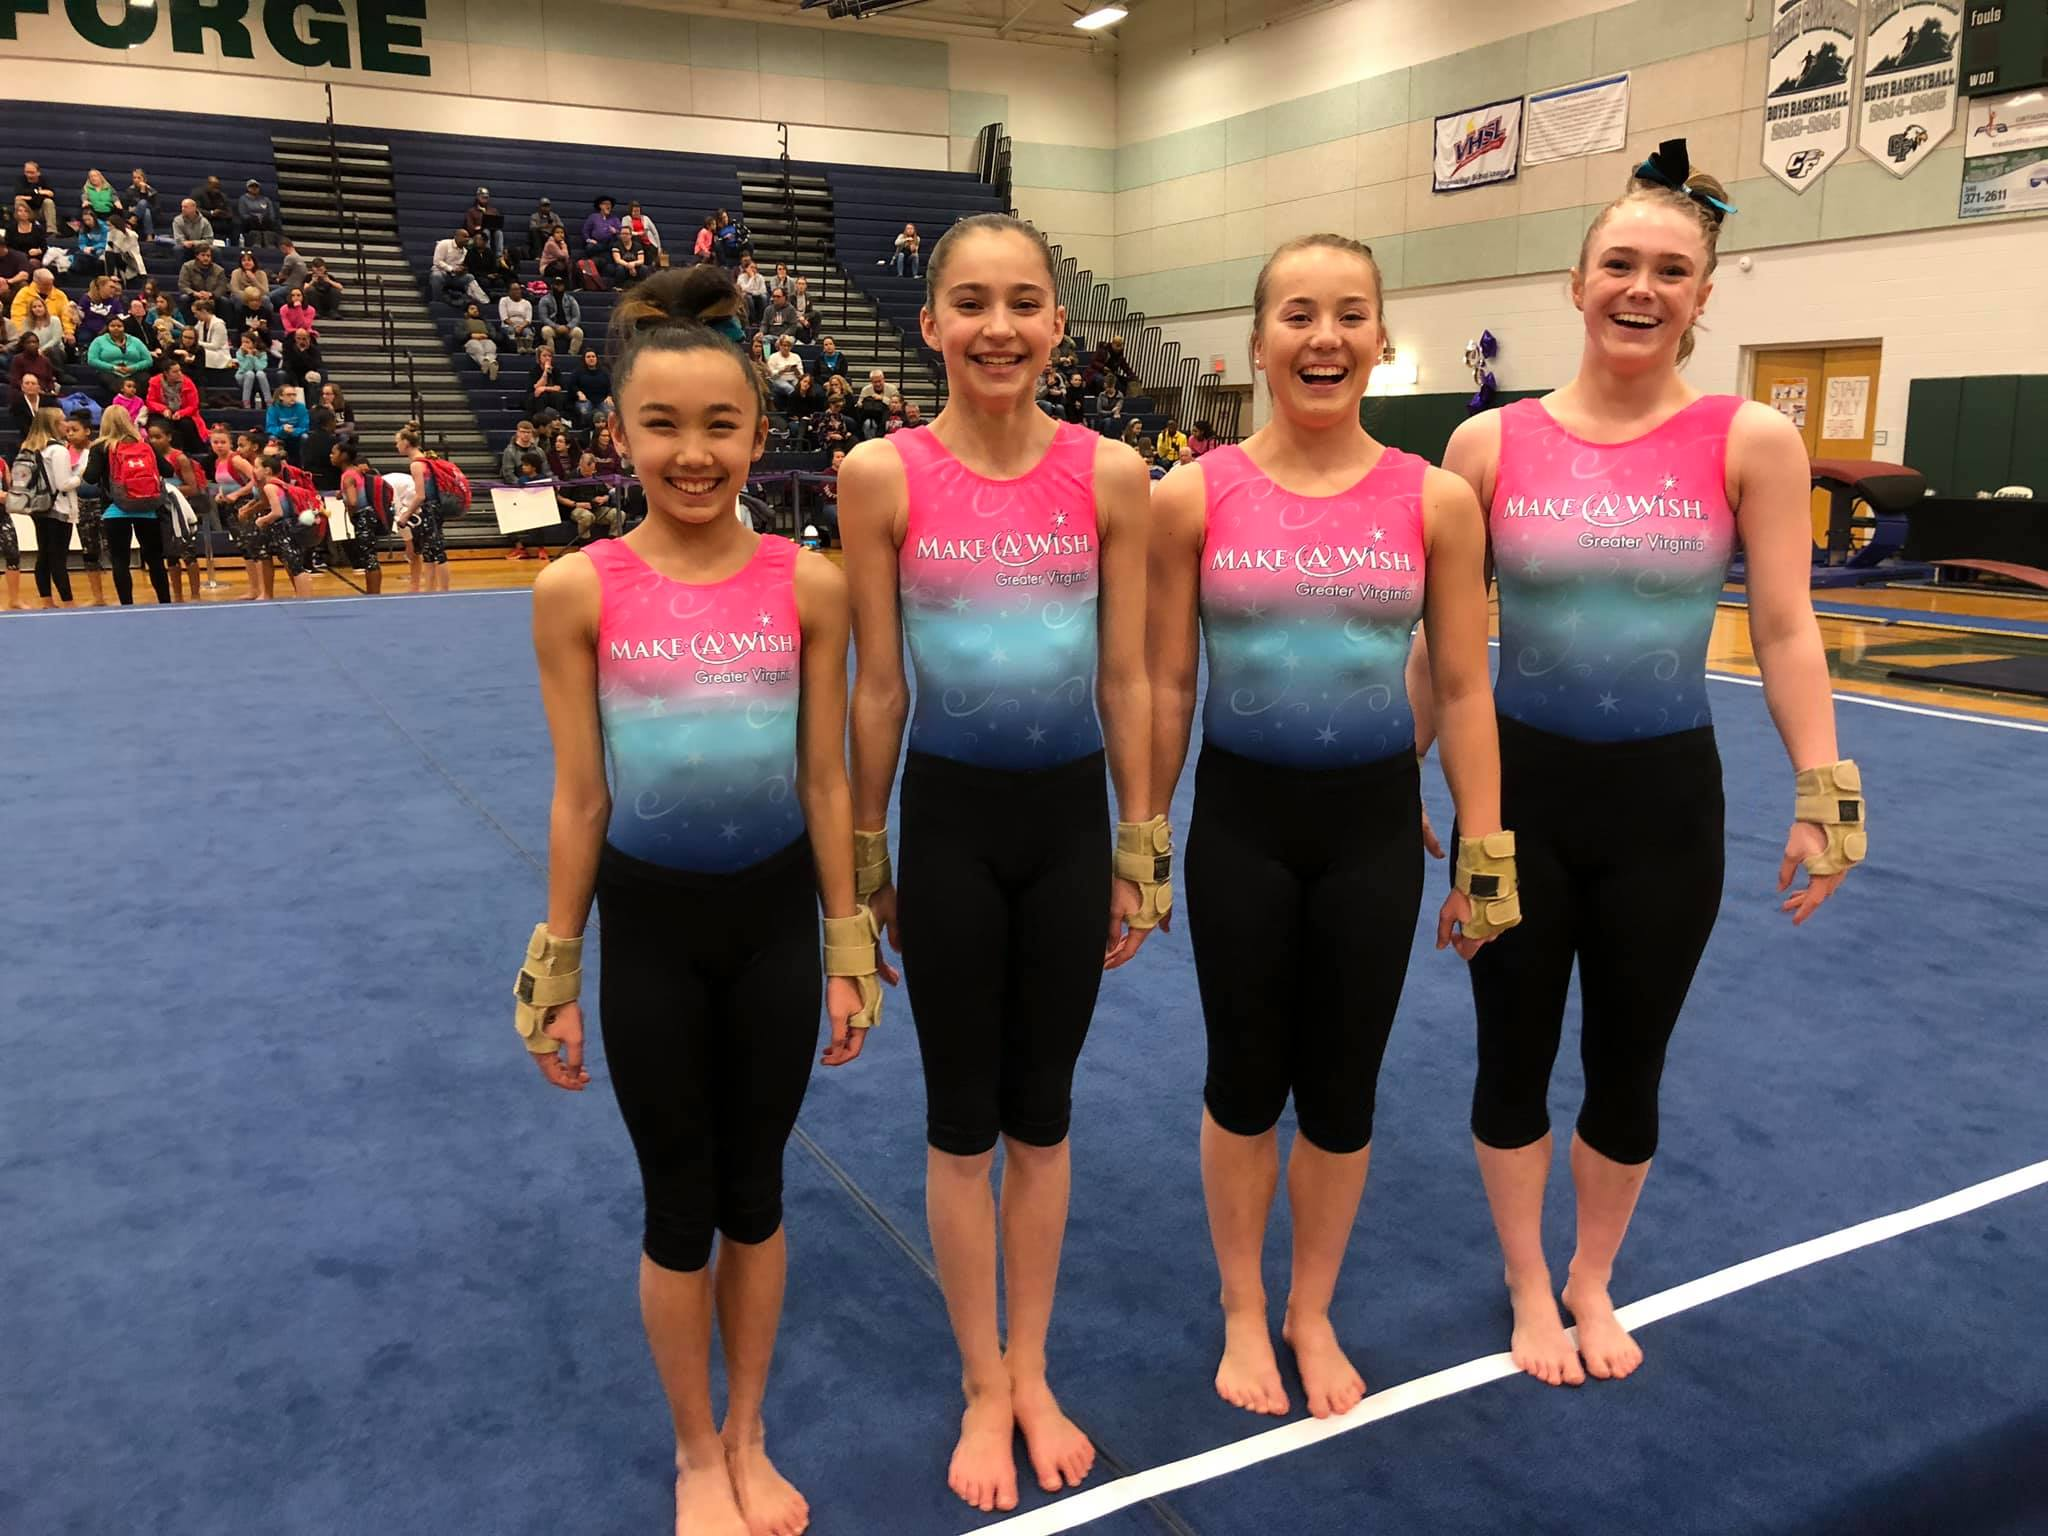 Gymnastics competition smile